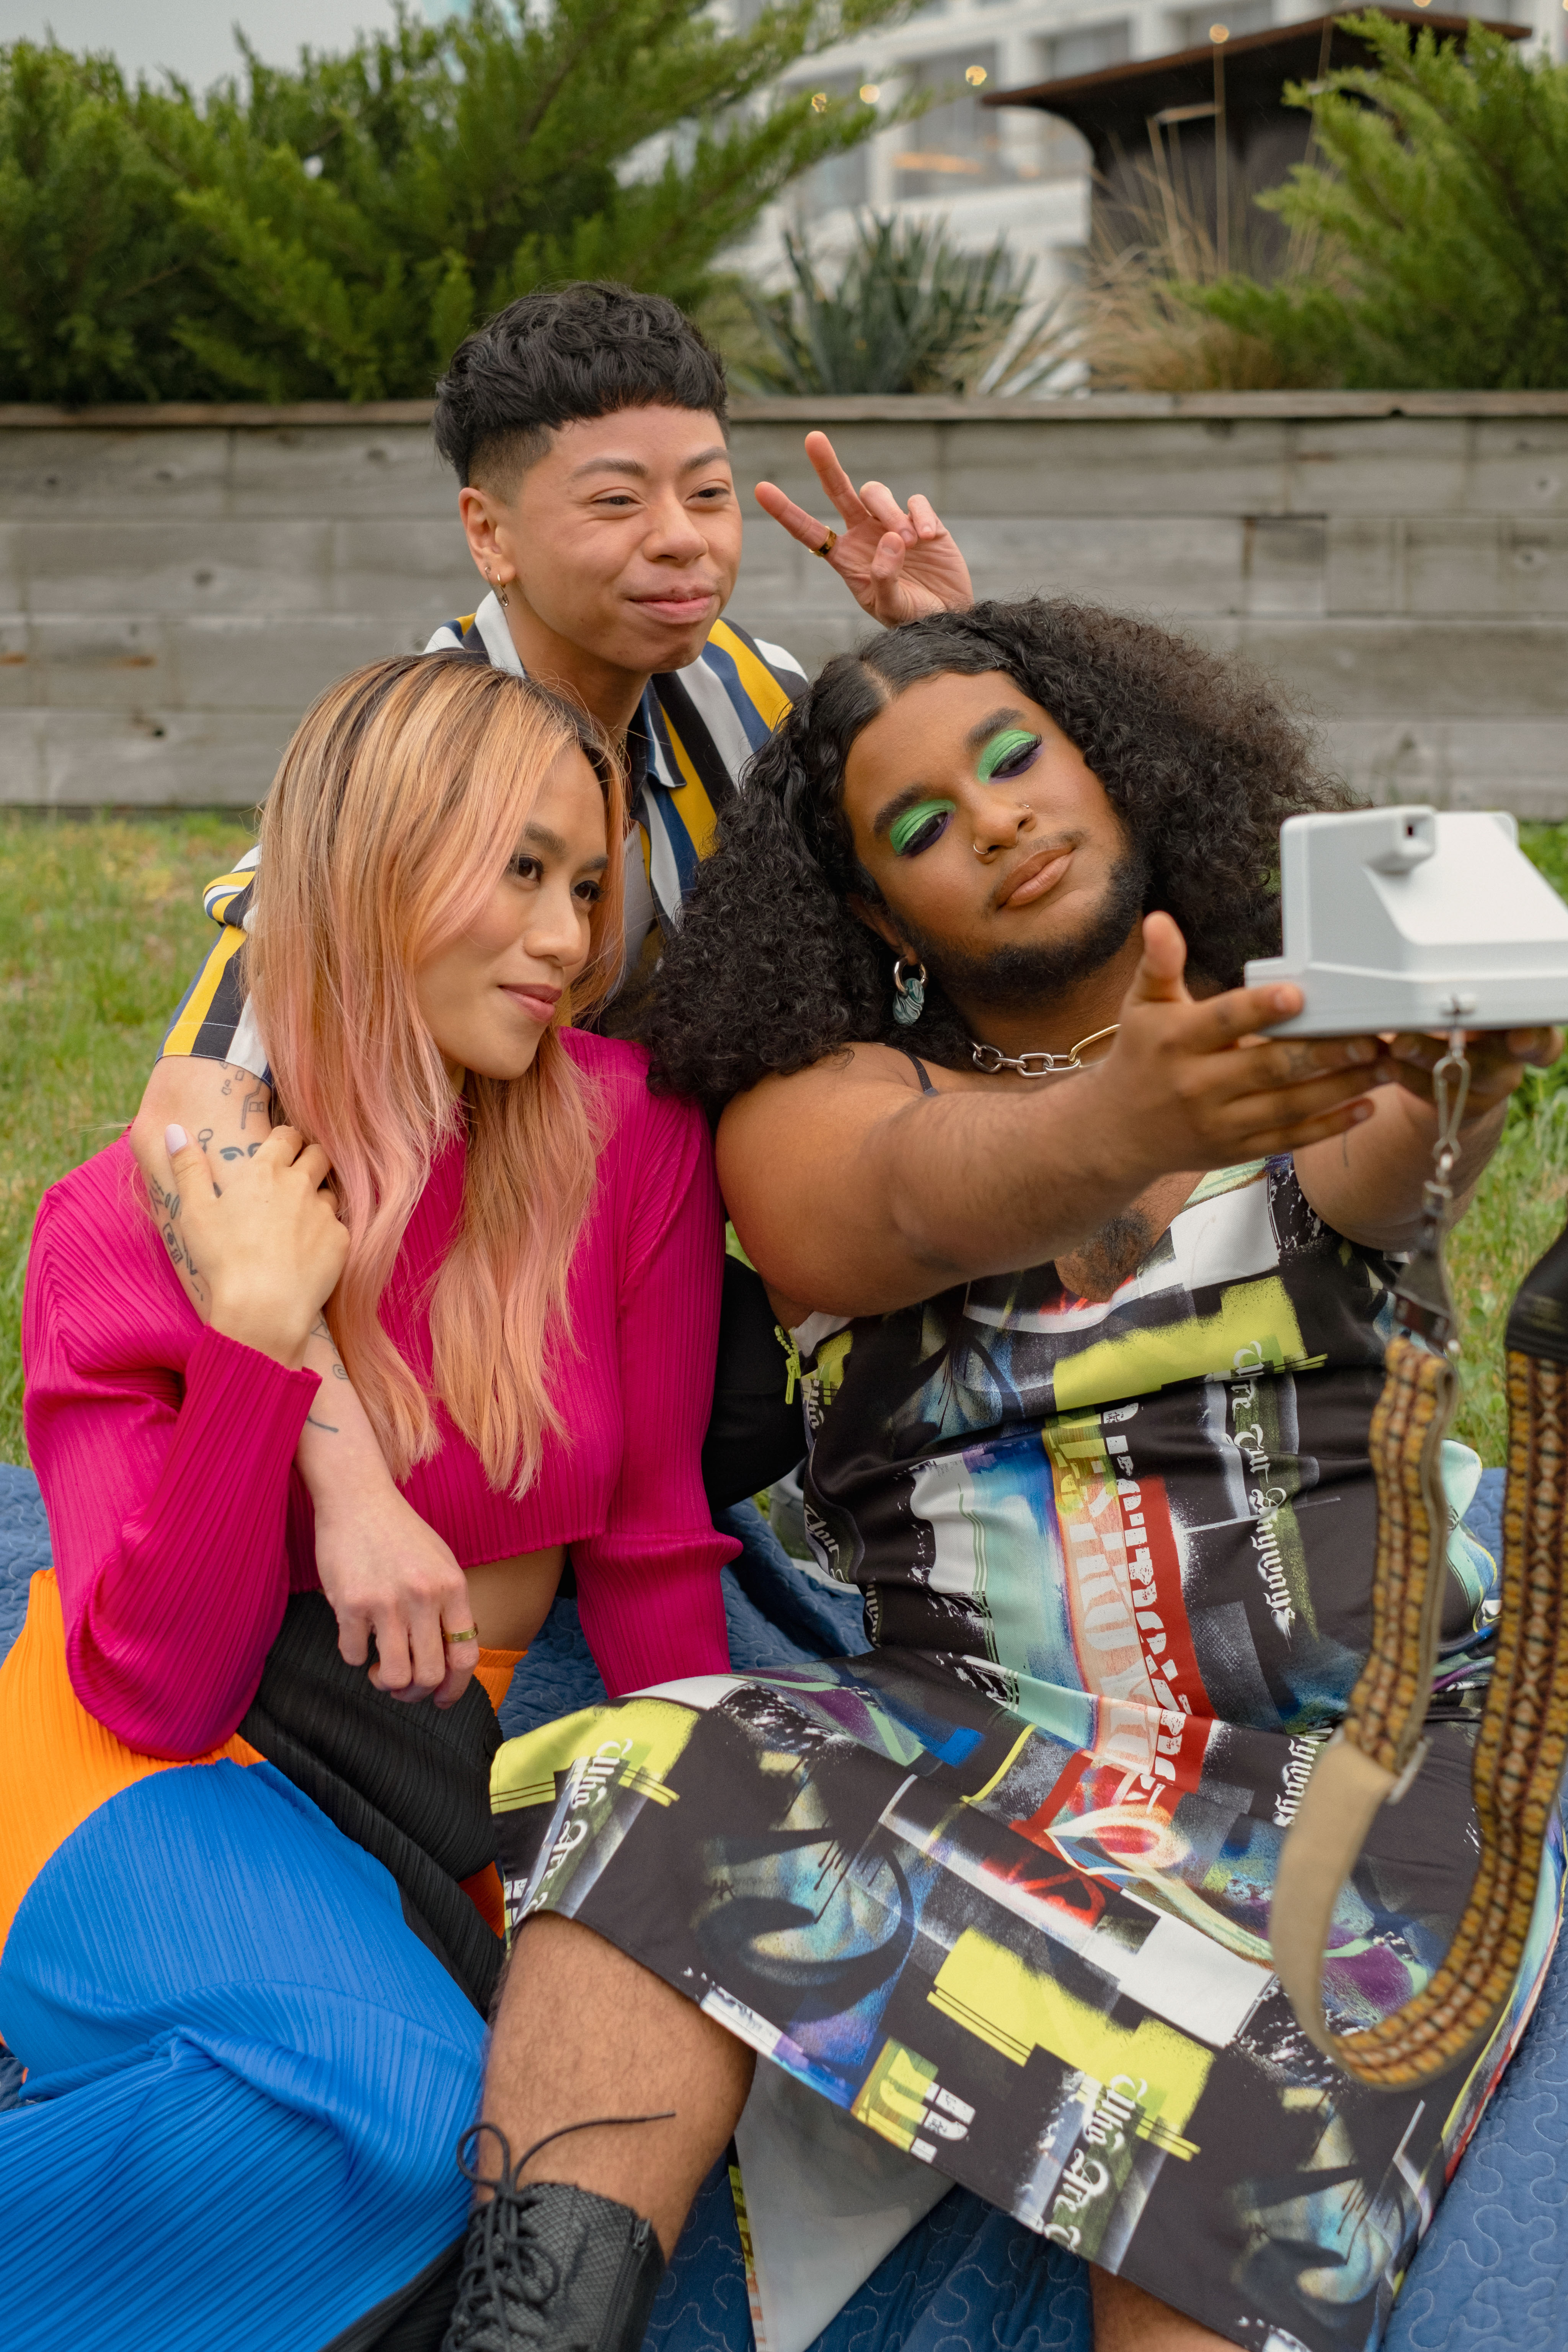 Three friends of varying genders taking a selfie in a park with a polaroid camera